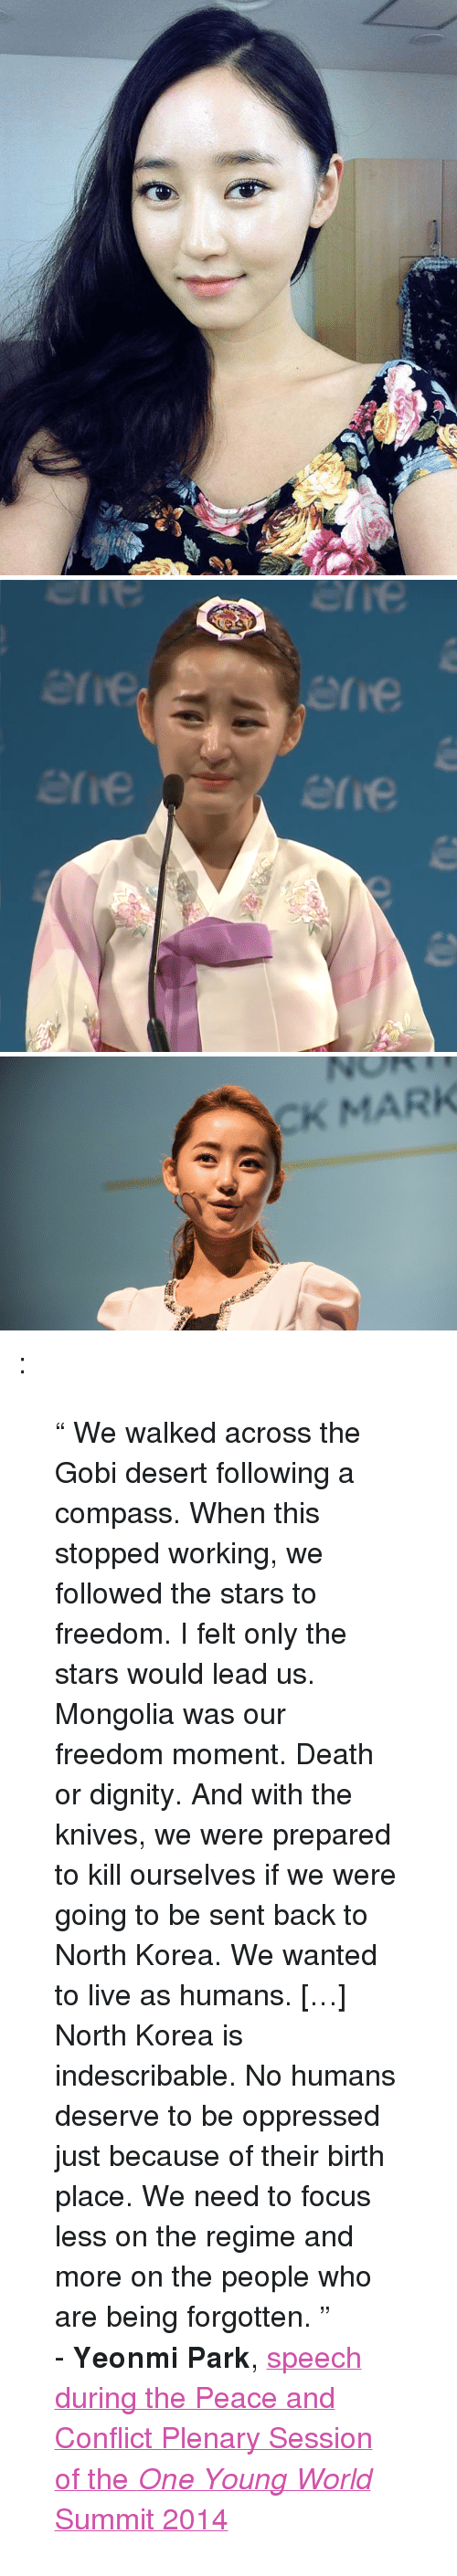 """Gobie: erie  erre  erie  re   CK MARK <p><a class=""""tumblr_blog"""" href=""""http://.tumblr.com/post/109307342016""""></a>:</p> <blockquote> <p>"""" We walked across the Gobi desert following a compass. When this stopped working, we followed the stars to freedom. I felt only the stars would lead us. Mongolia was our freedom moment. Death or dignity. And with the knives, we were prepared to kill ourselves if we were going to be sent back to North Korea. We wanted to live as humans. […] North Korea is indescribable. No humans deserve to be oppressed just because of their birth place. We need to focus less on the regime and more on the people who are being forgotten. """"</p> <p>- <span class=""""fn""""><strong>Yeonmi</strong> <strong>Park</strong>, <a href=""""https://www.youtube.com/watch?v=Ei-gGvLWOZI"""">speech </a></span><span class=""""fn""""><a href=""""https://www.youtube.com/watch?v=Ei-gGvLWOZI"""">during the Peace and Conflict Plenary Session of the <em>One Young World</em> Summit 2014</a></span></p> </blockquote>"""